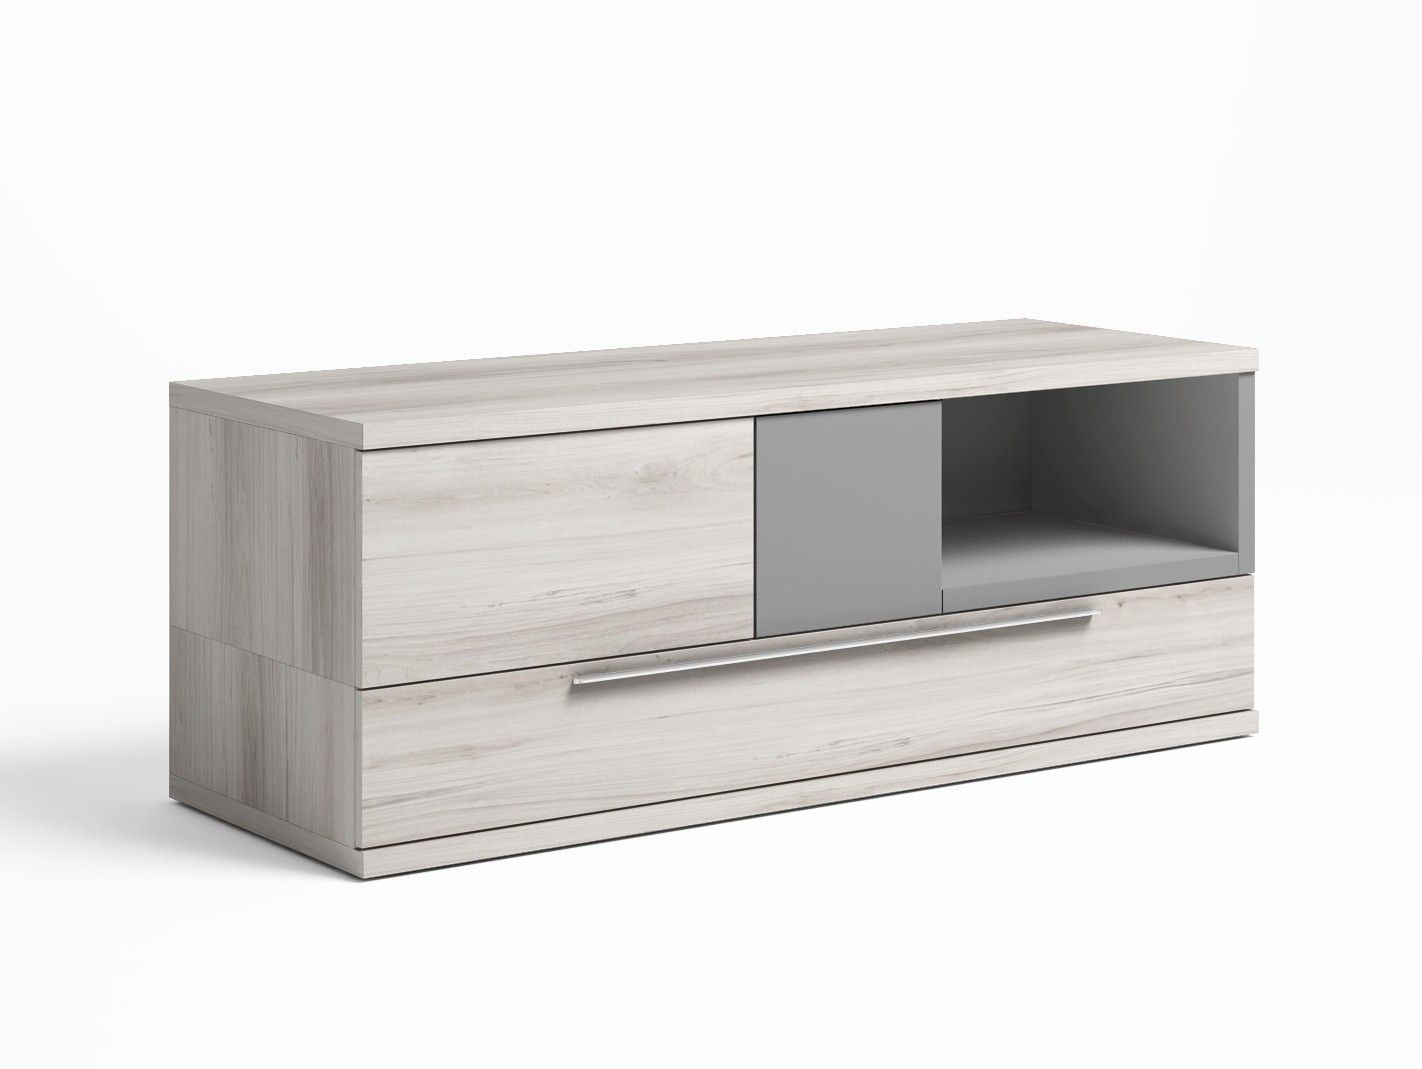 Mueble salon roble wengue 20170819040607 for Muebles low cost madrid